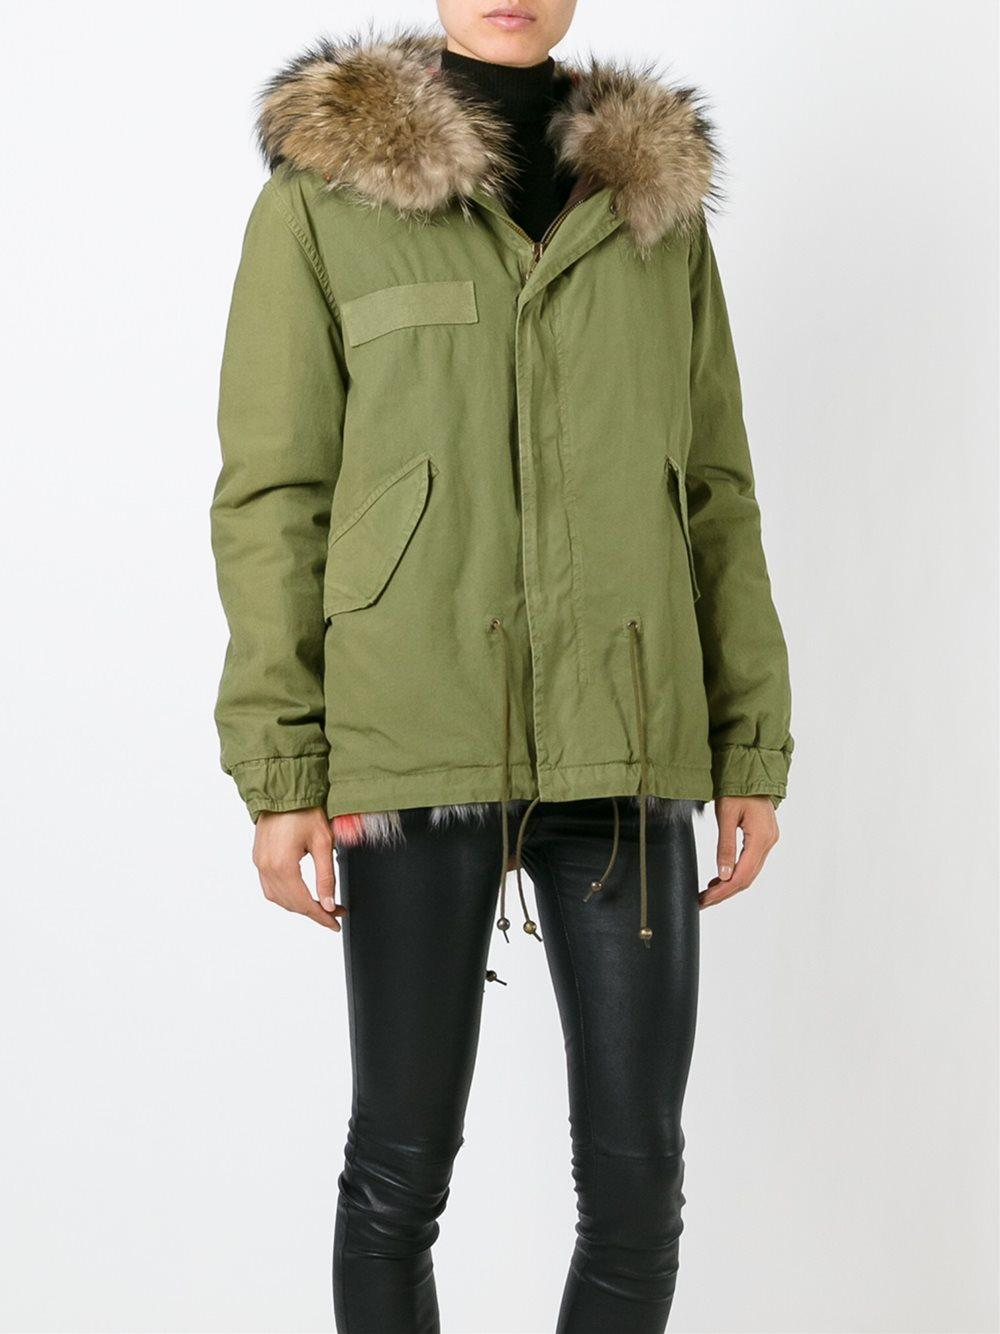 Mr Amp Mrs Italy Fox And Raccoon Fur Trim Parka In Green Lyst